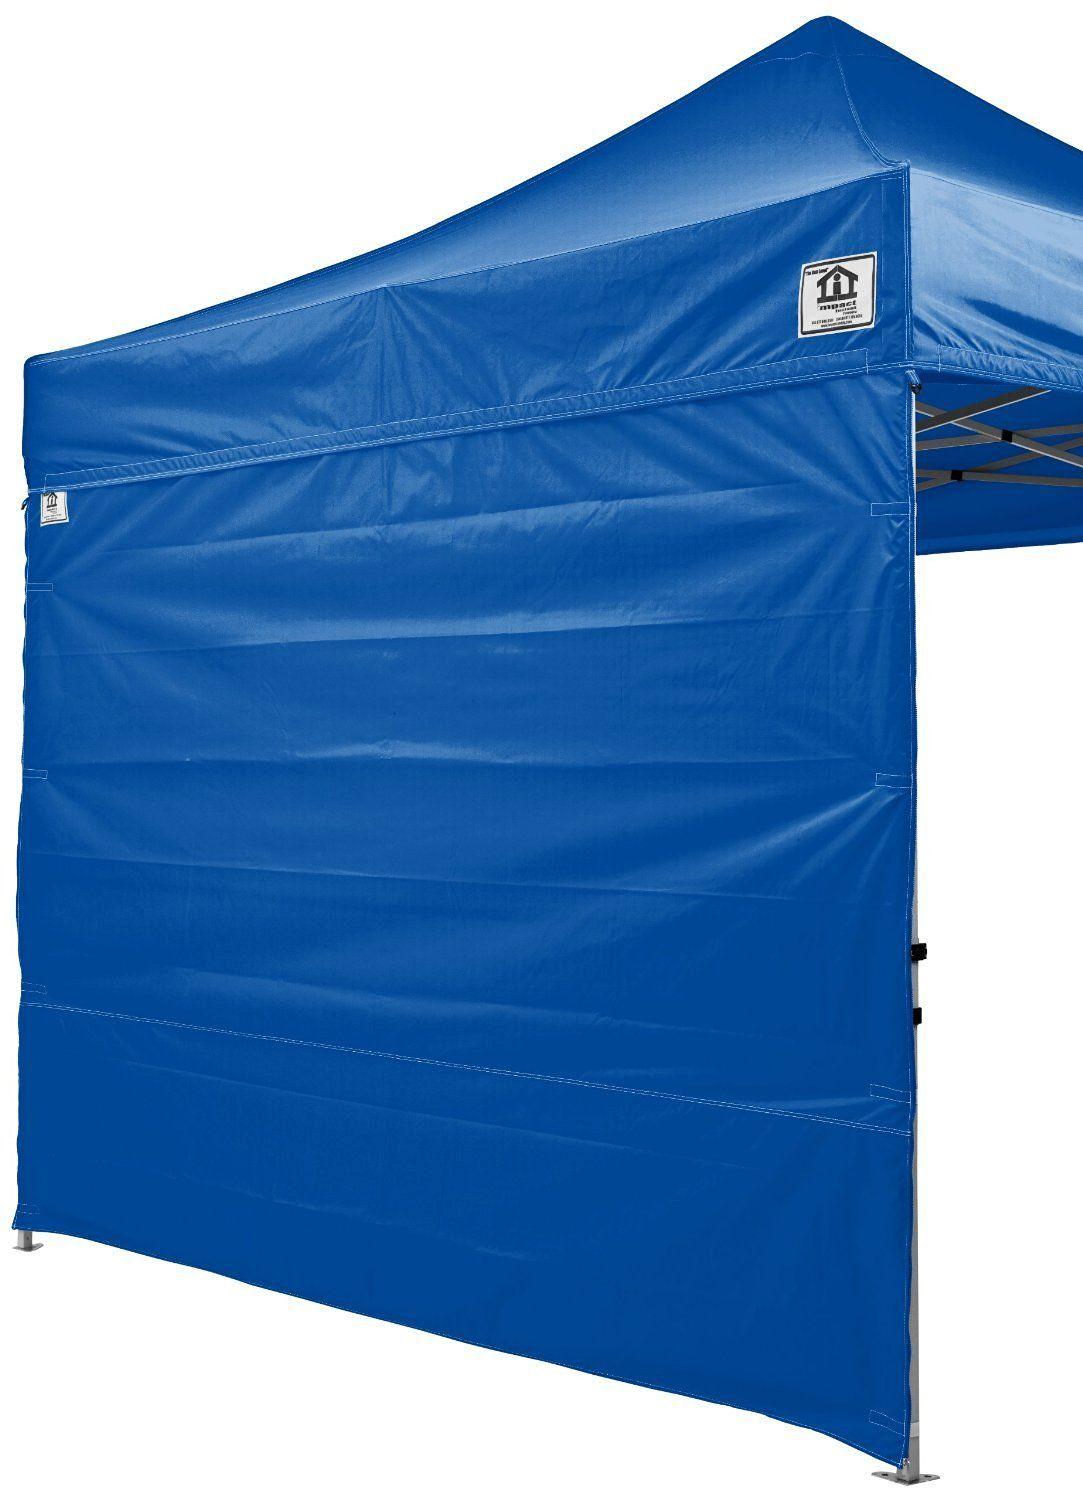 C&ing Tents Impact Canopy 10x10 Canopy Tent Solid Sidewalls/WHITE Screen Room Sidewalls Combo  sc 1 st  Pinterest & Camping Tents :Impact Canopy 10x10 Canopy Tent Solid Sidewalls ...